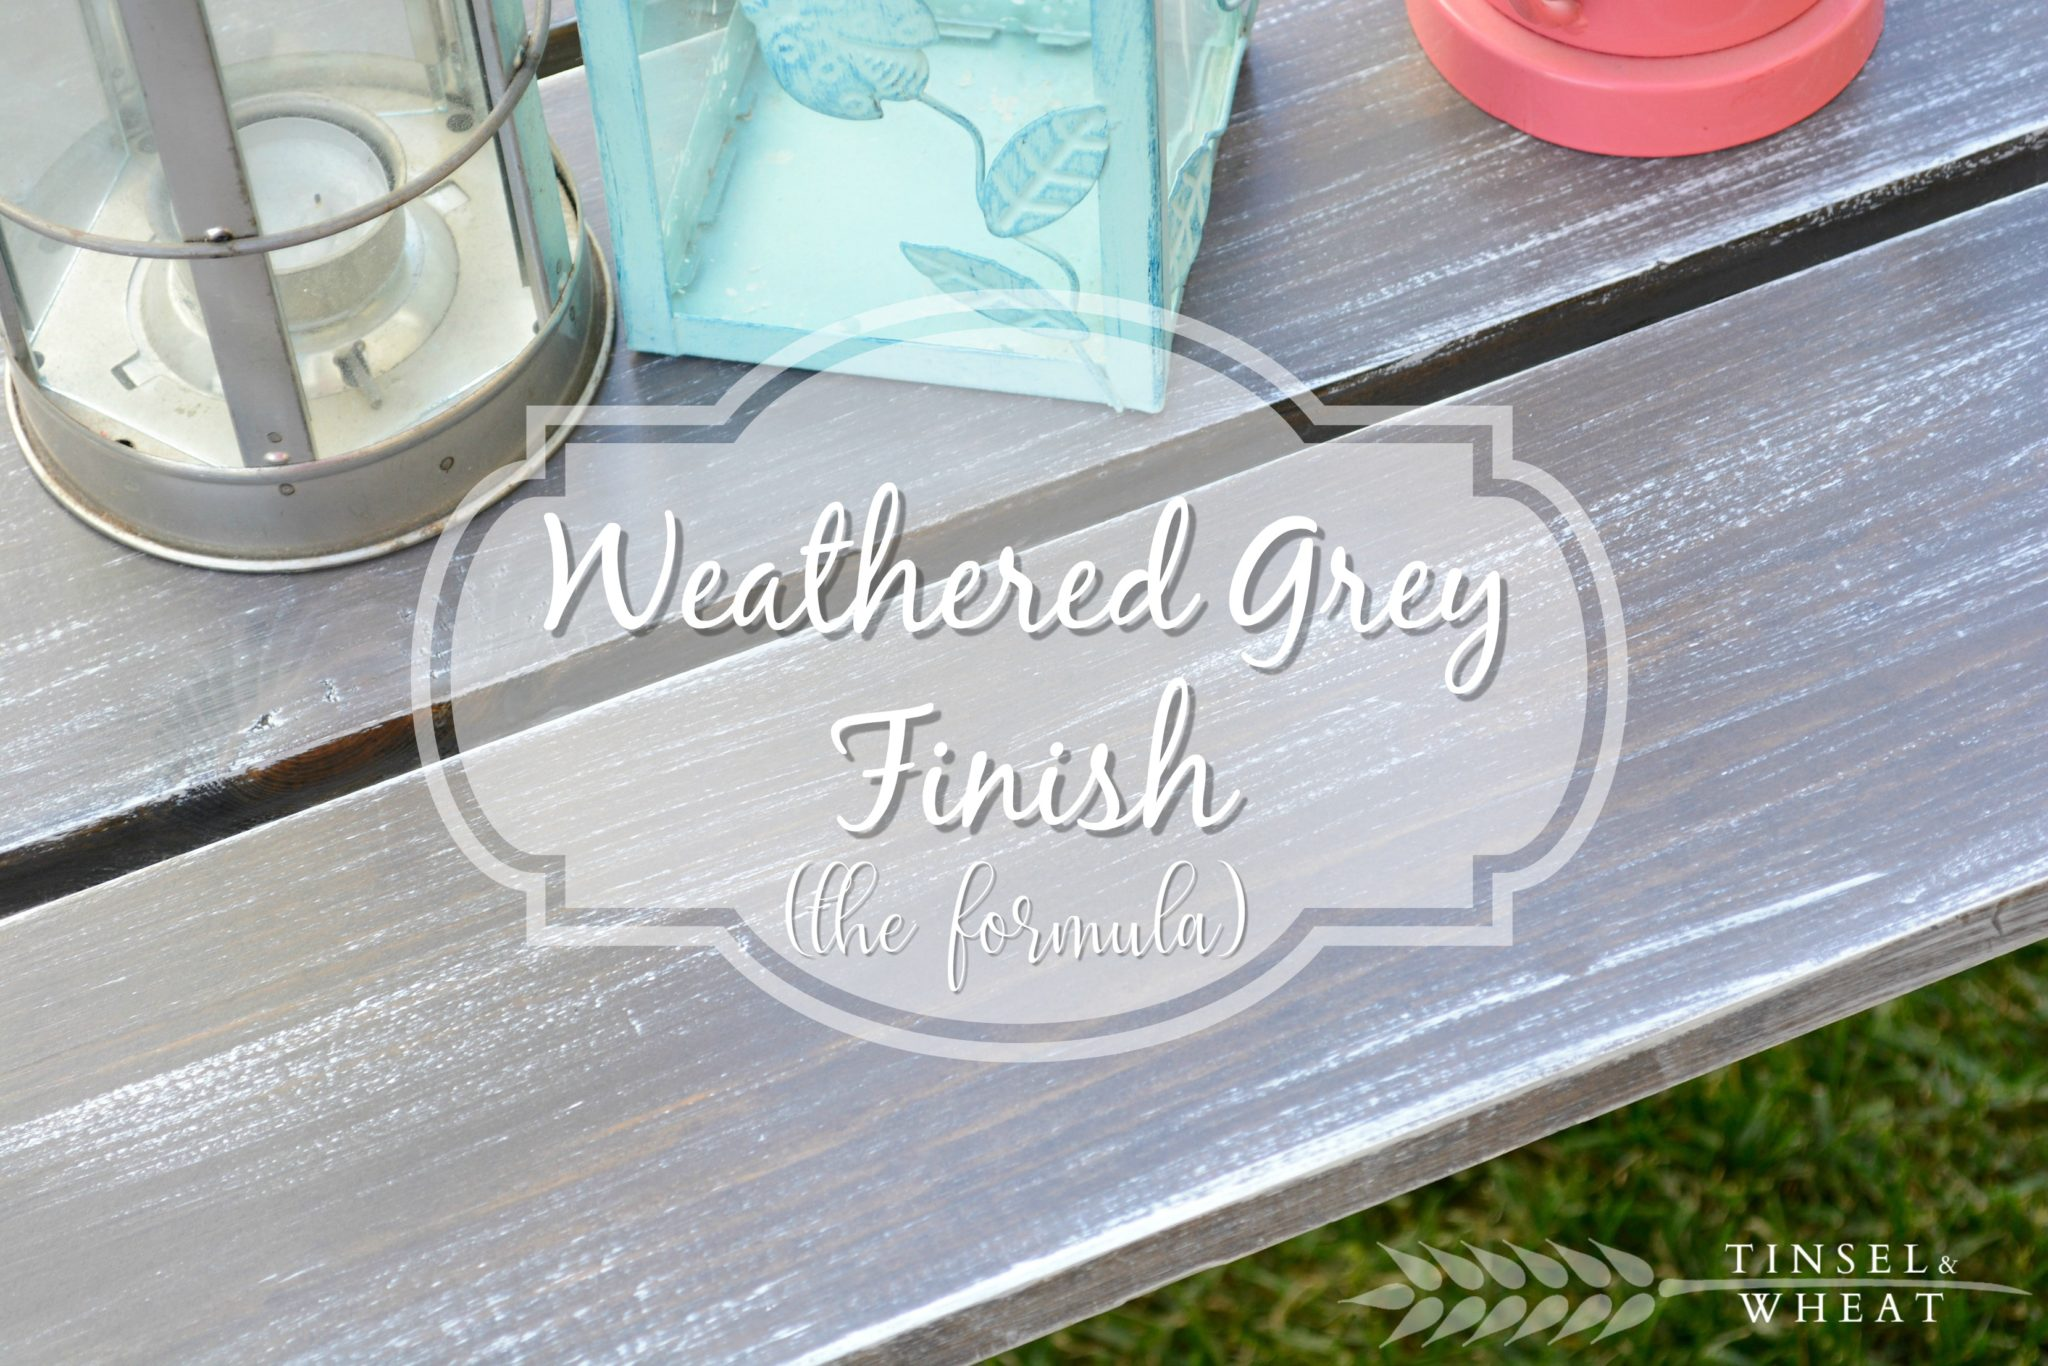 Weathered Grey Formula by Tinsel & Wheat